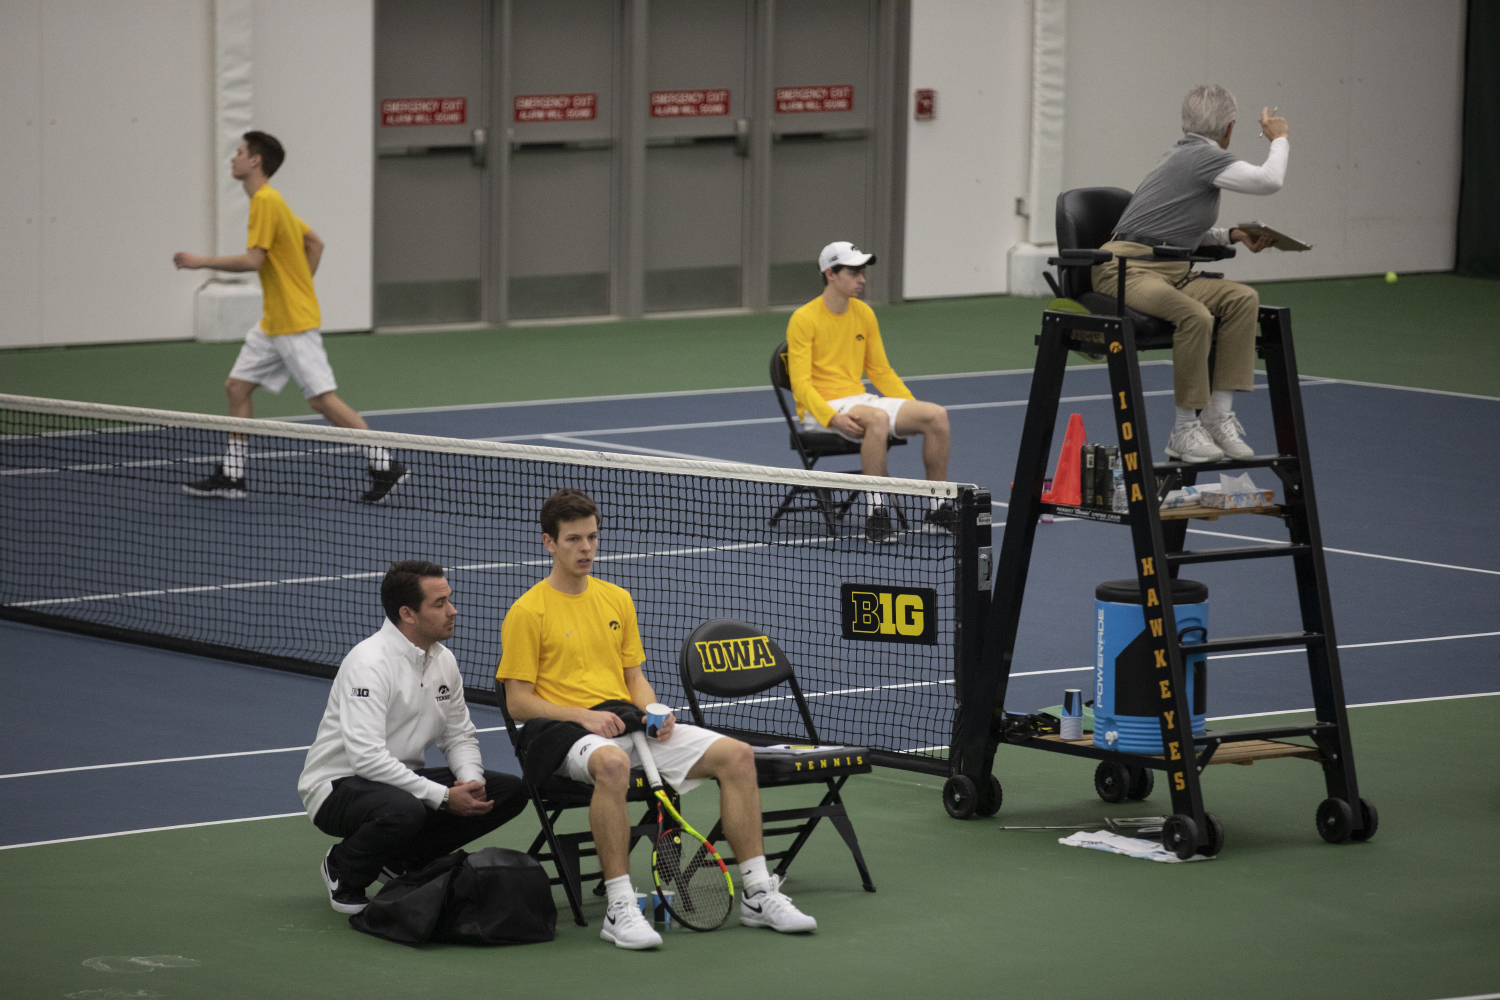 Head+coach+Ross+Wilson+talks+with+Piotr+Smietana+during+the+Men%27s+tennis+match+against+University+of+Utah+at+the+Hawkeye+Tennis+and+Recreation+Complex+on+Feb.+10%2C+2019.+The+Hawkeye+team+defeated+Utah+5-2.+